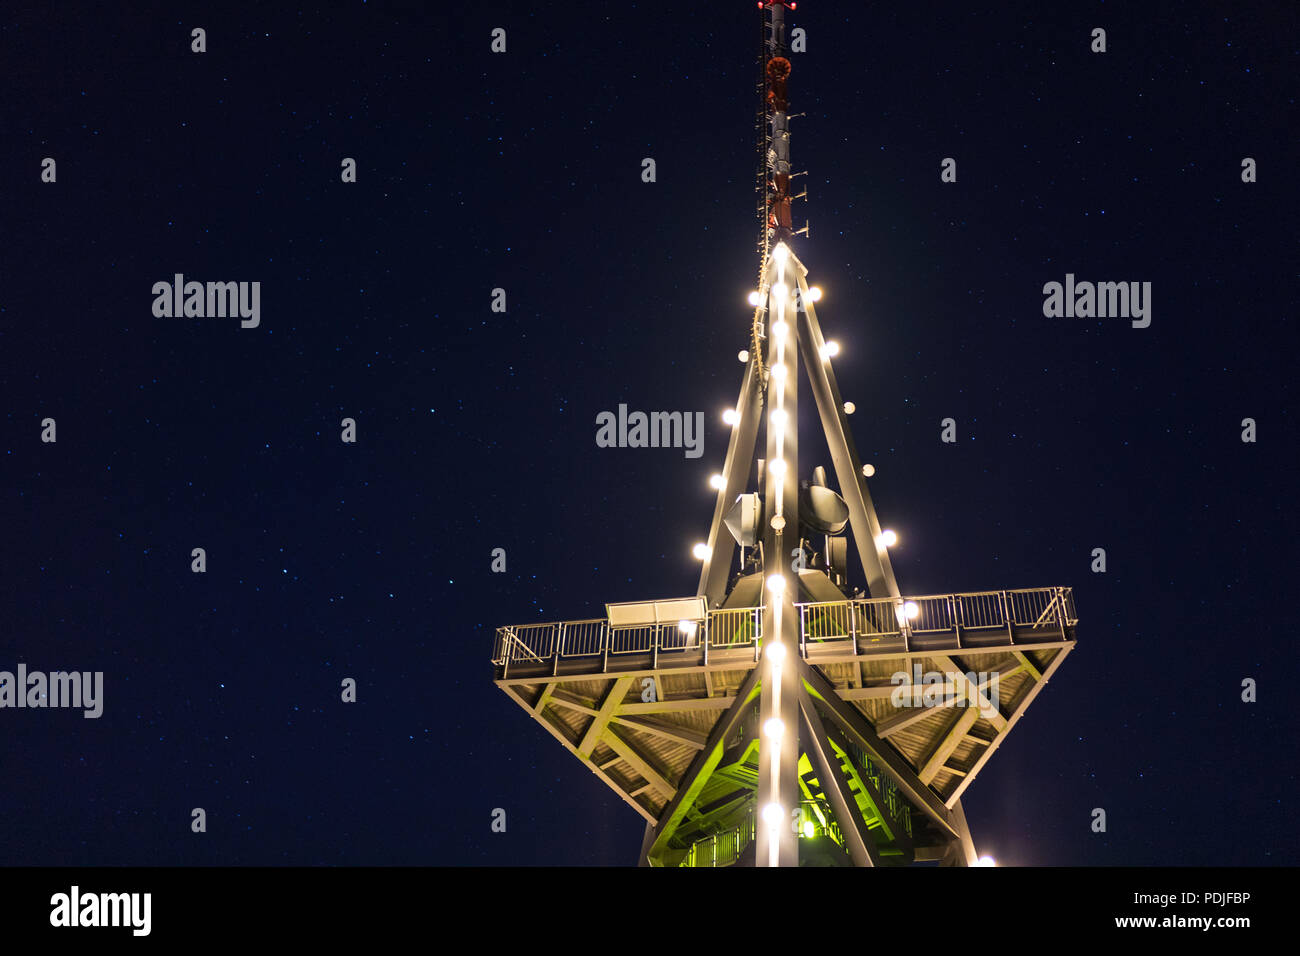 tv tower at night with lights and stars iconic low angle view - Stock Image